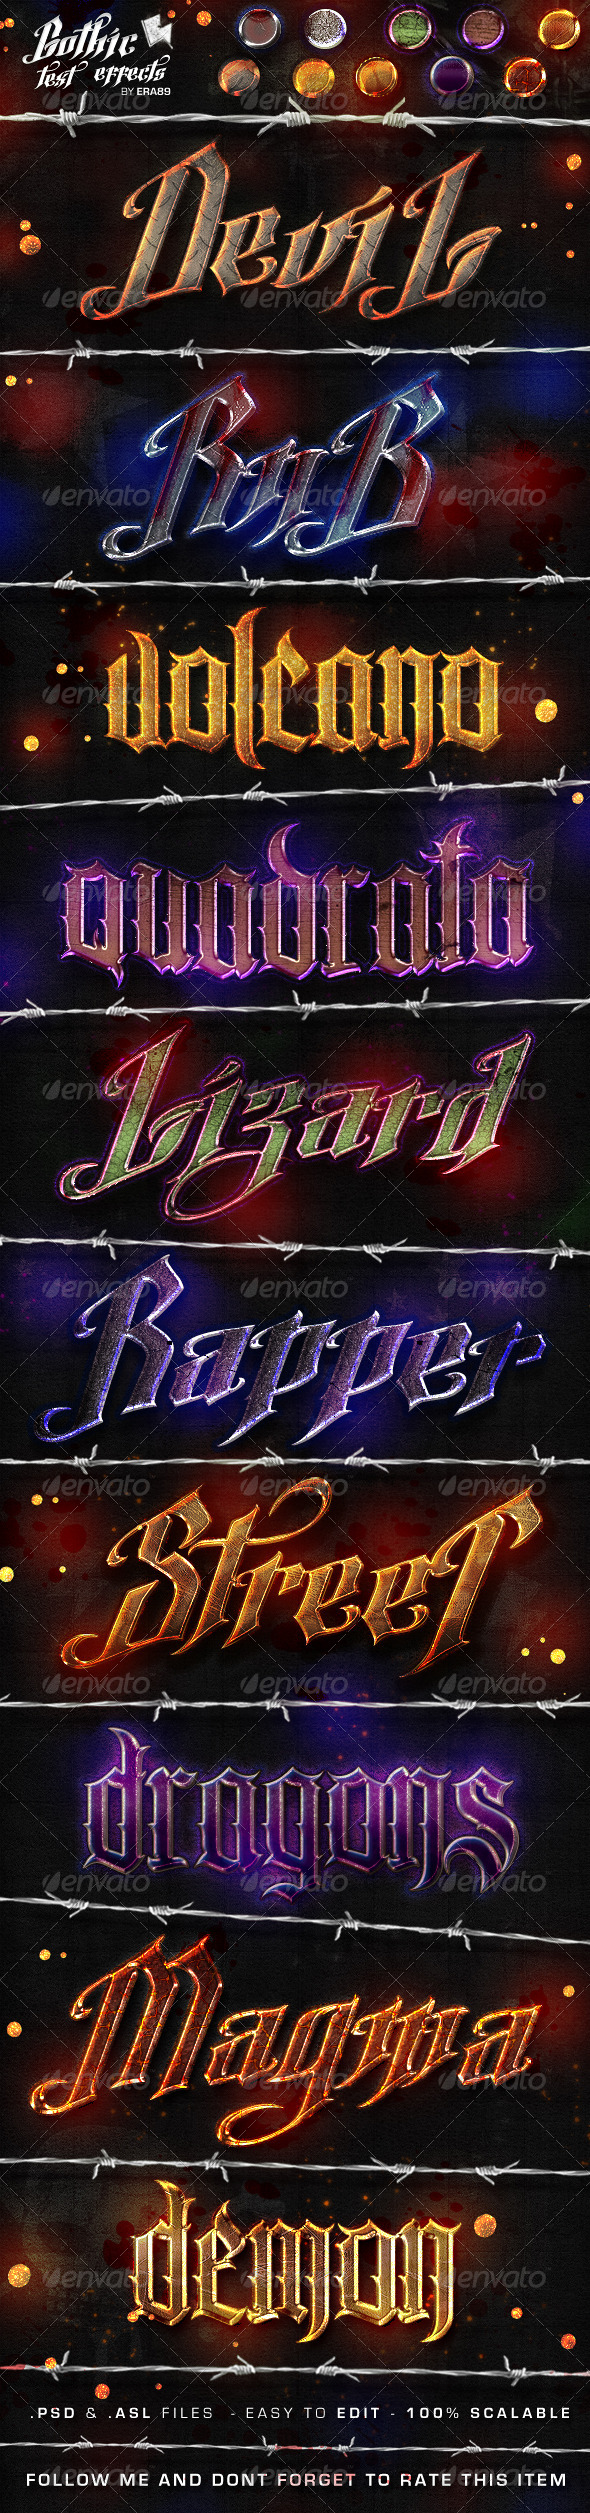 GraphicRiver Gothic Text Effects Photoshop Styles 4577590